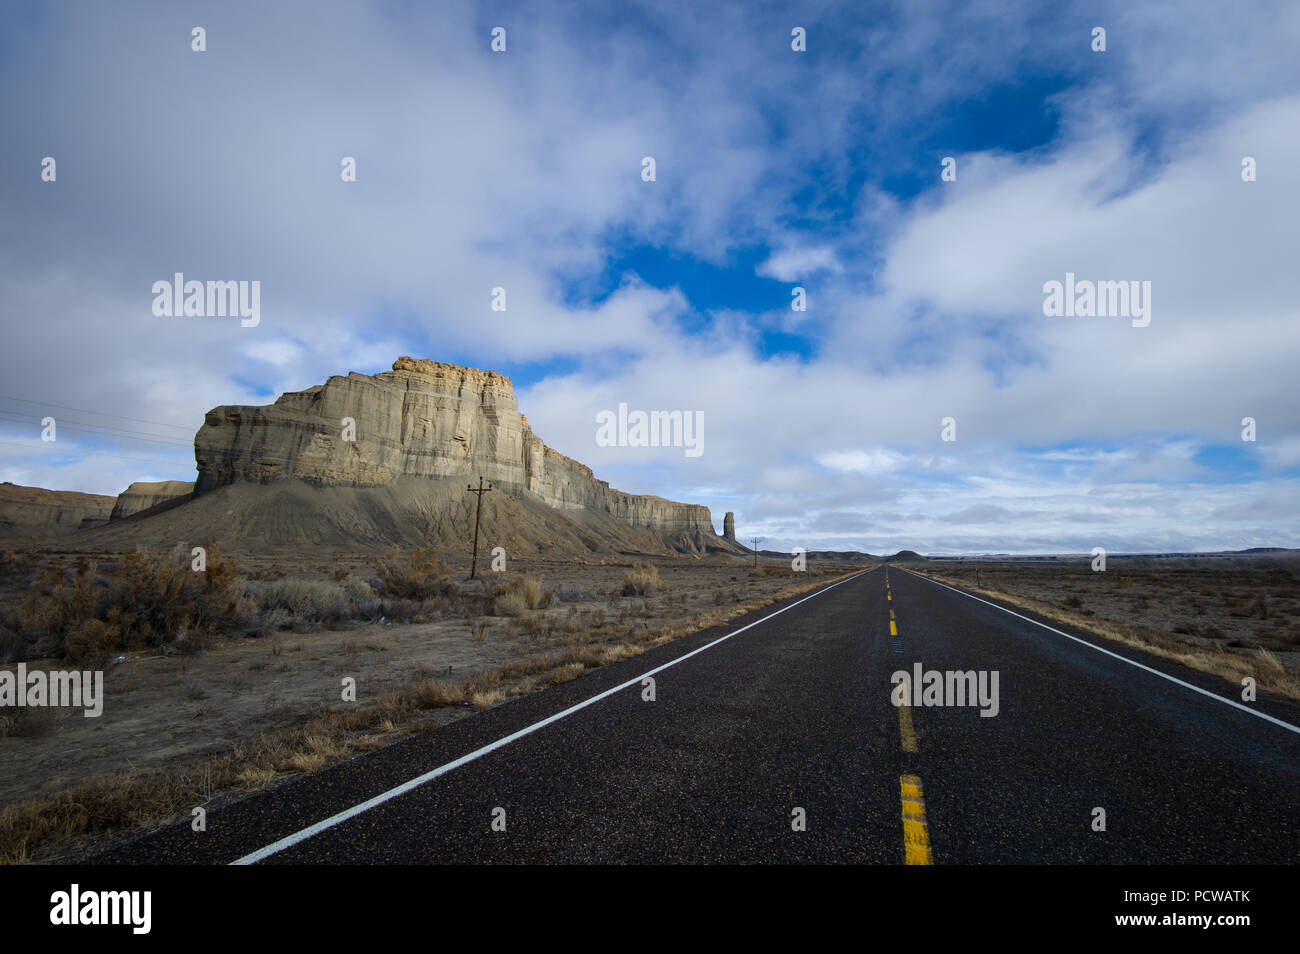 Southern Utah is sparsely populated and the rangelands along the highway provide for stunning scenery. - Stock Image